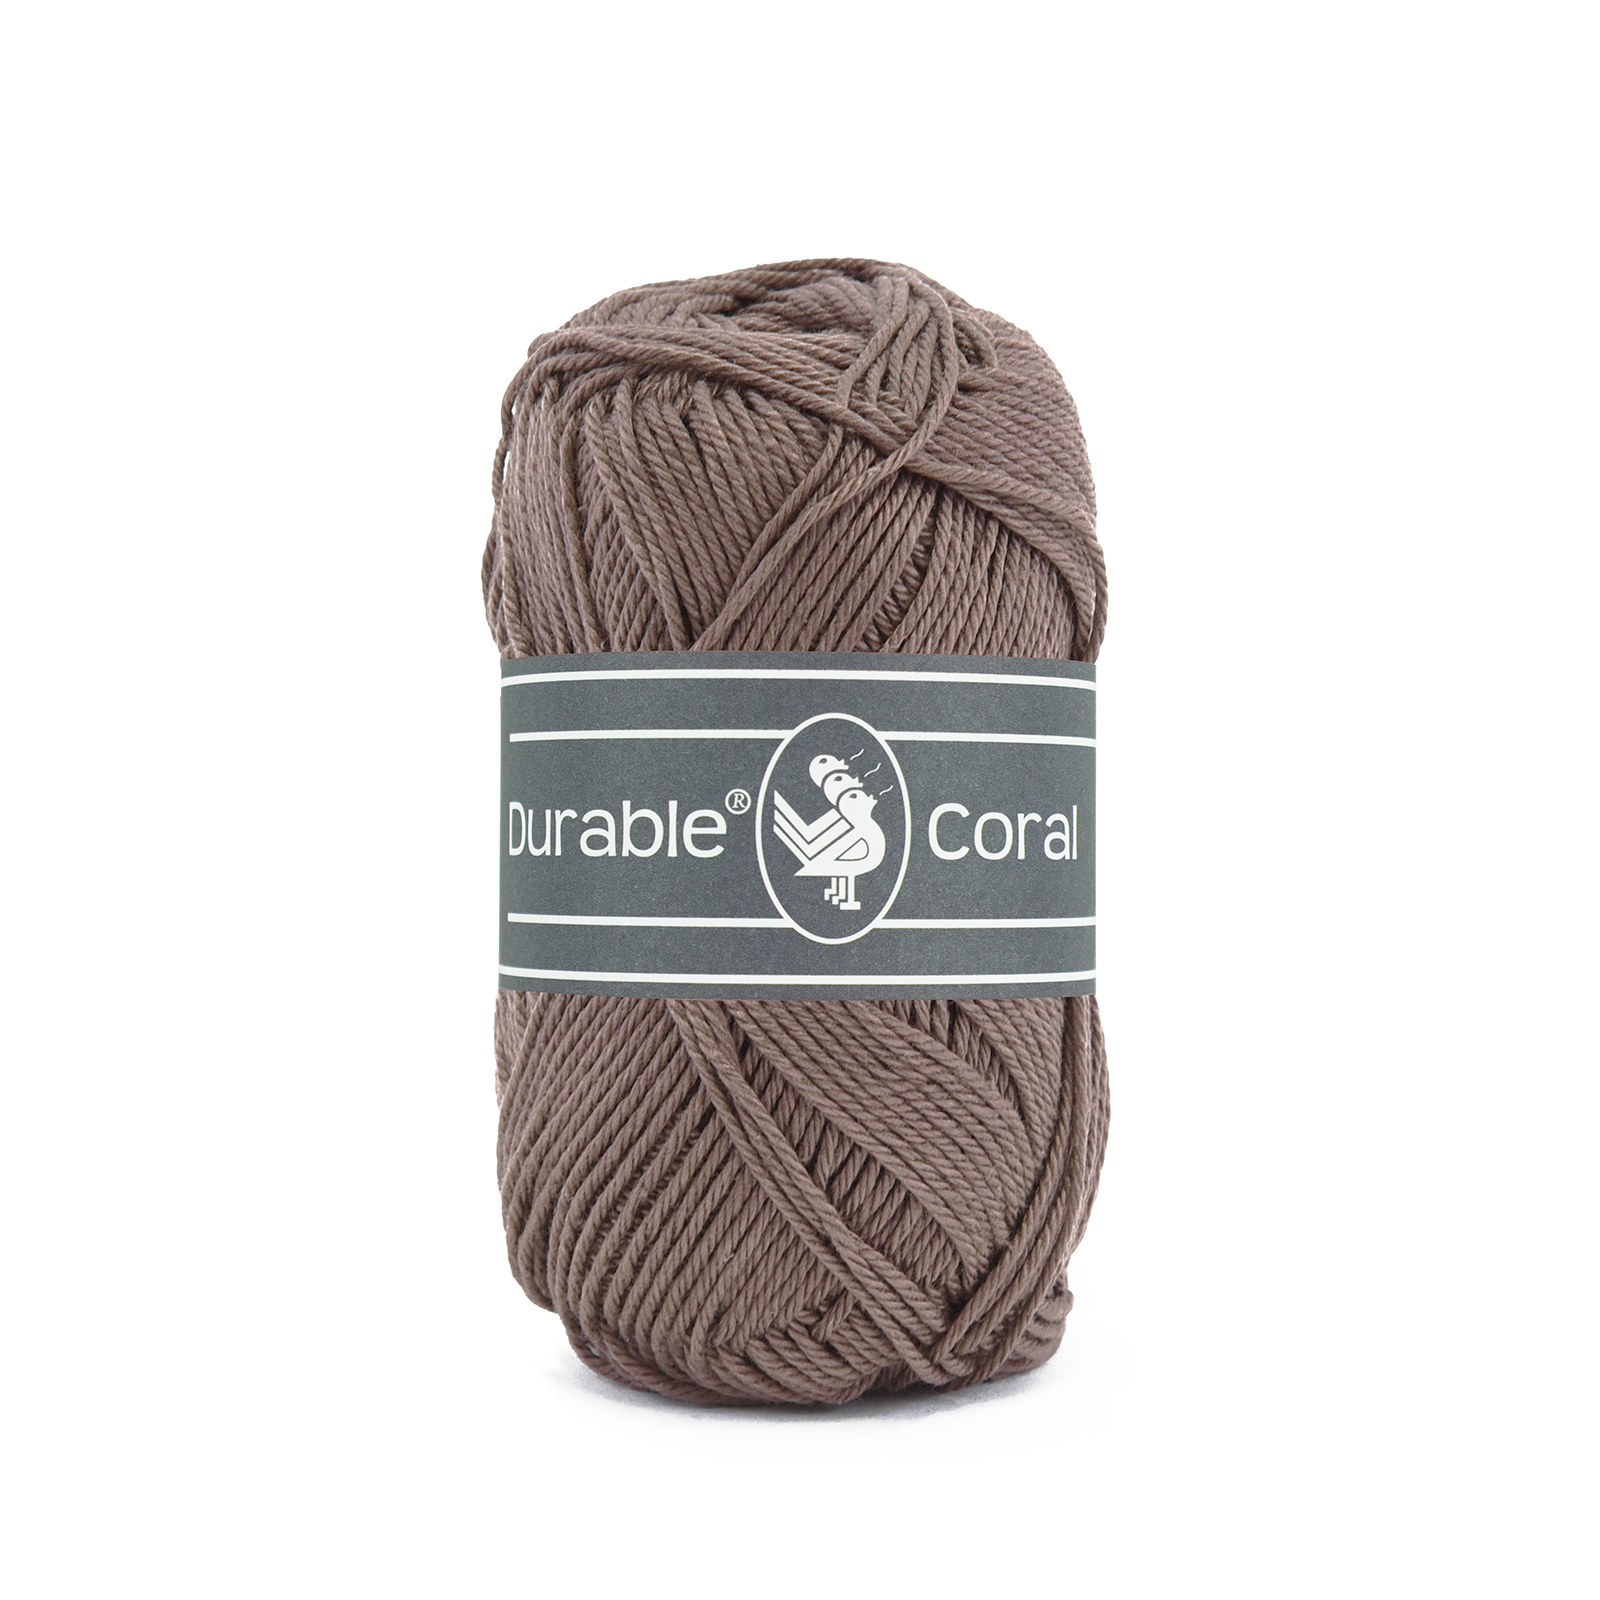 Coral – 343 Warm Taupe